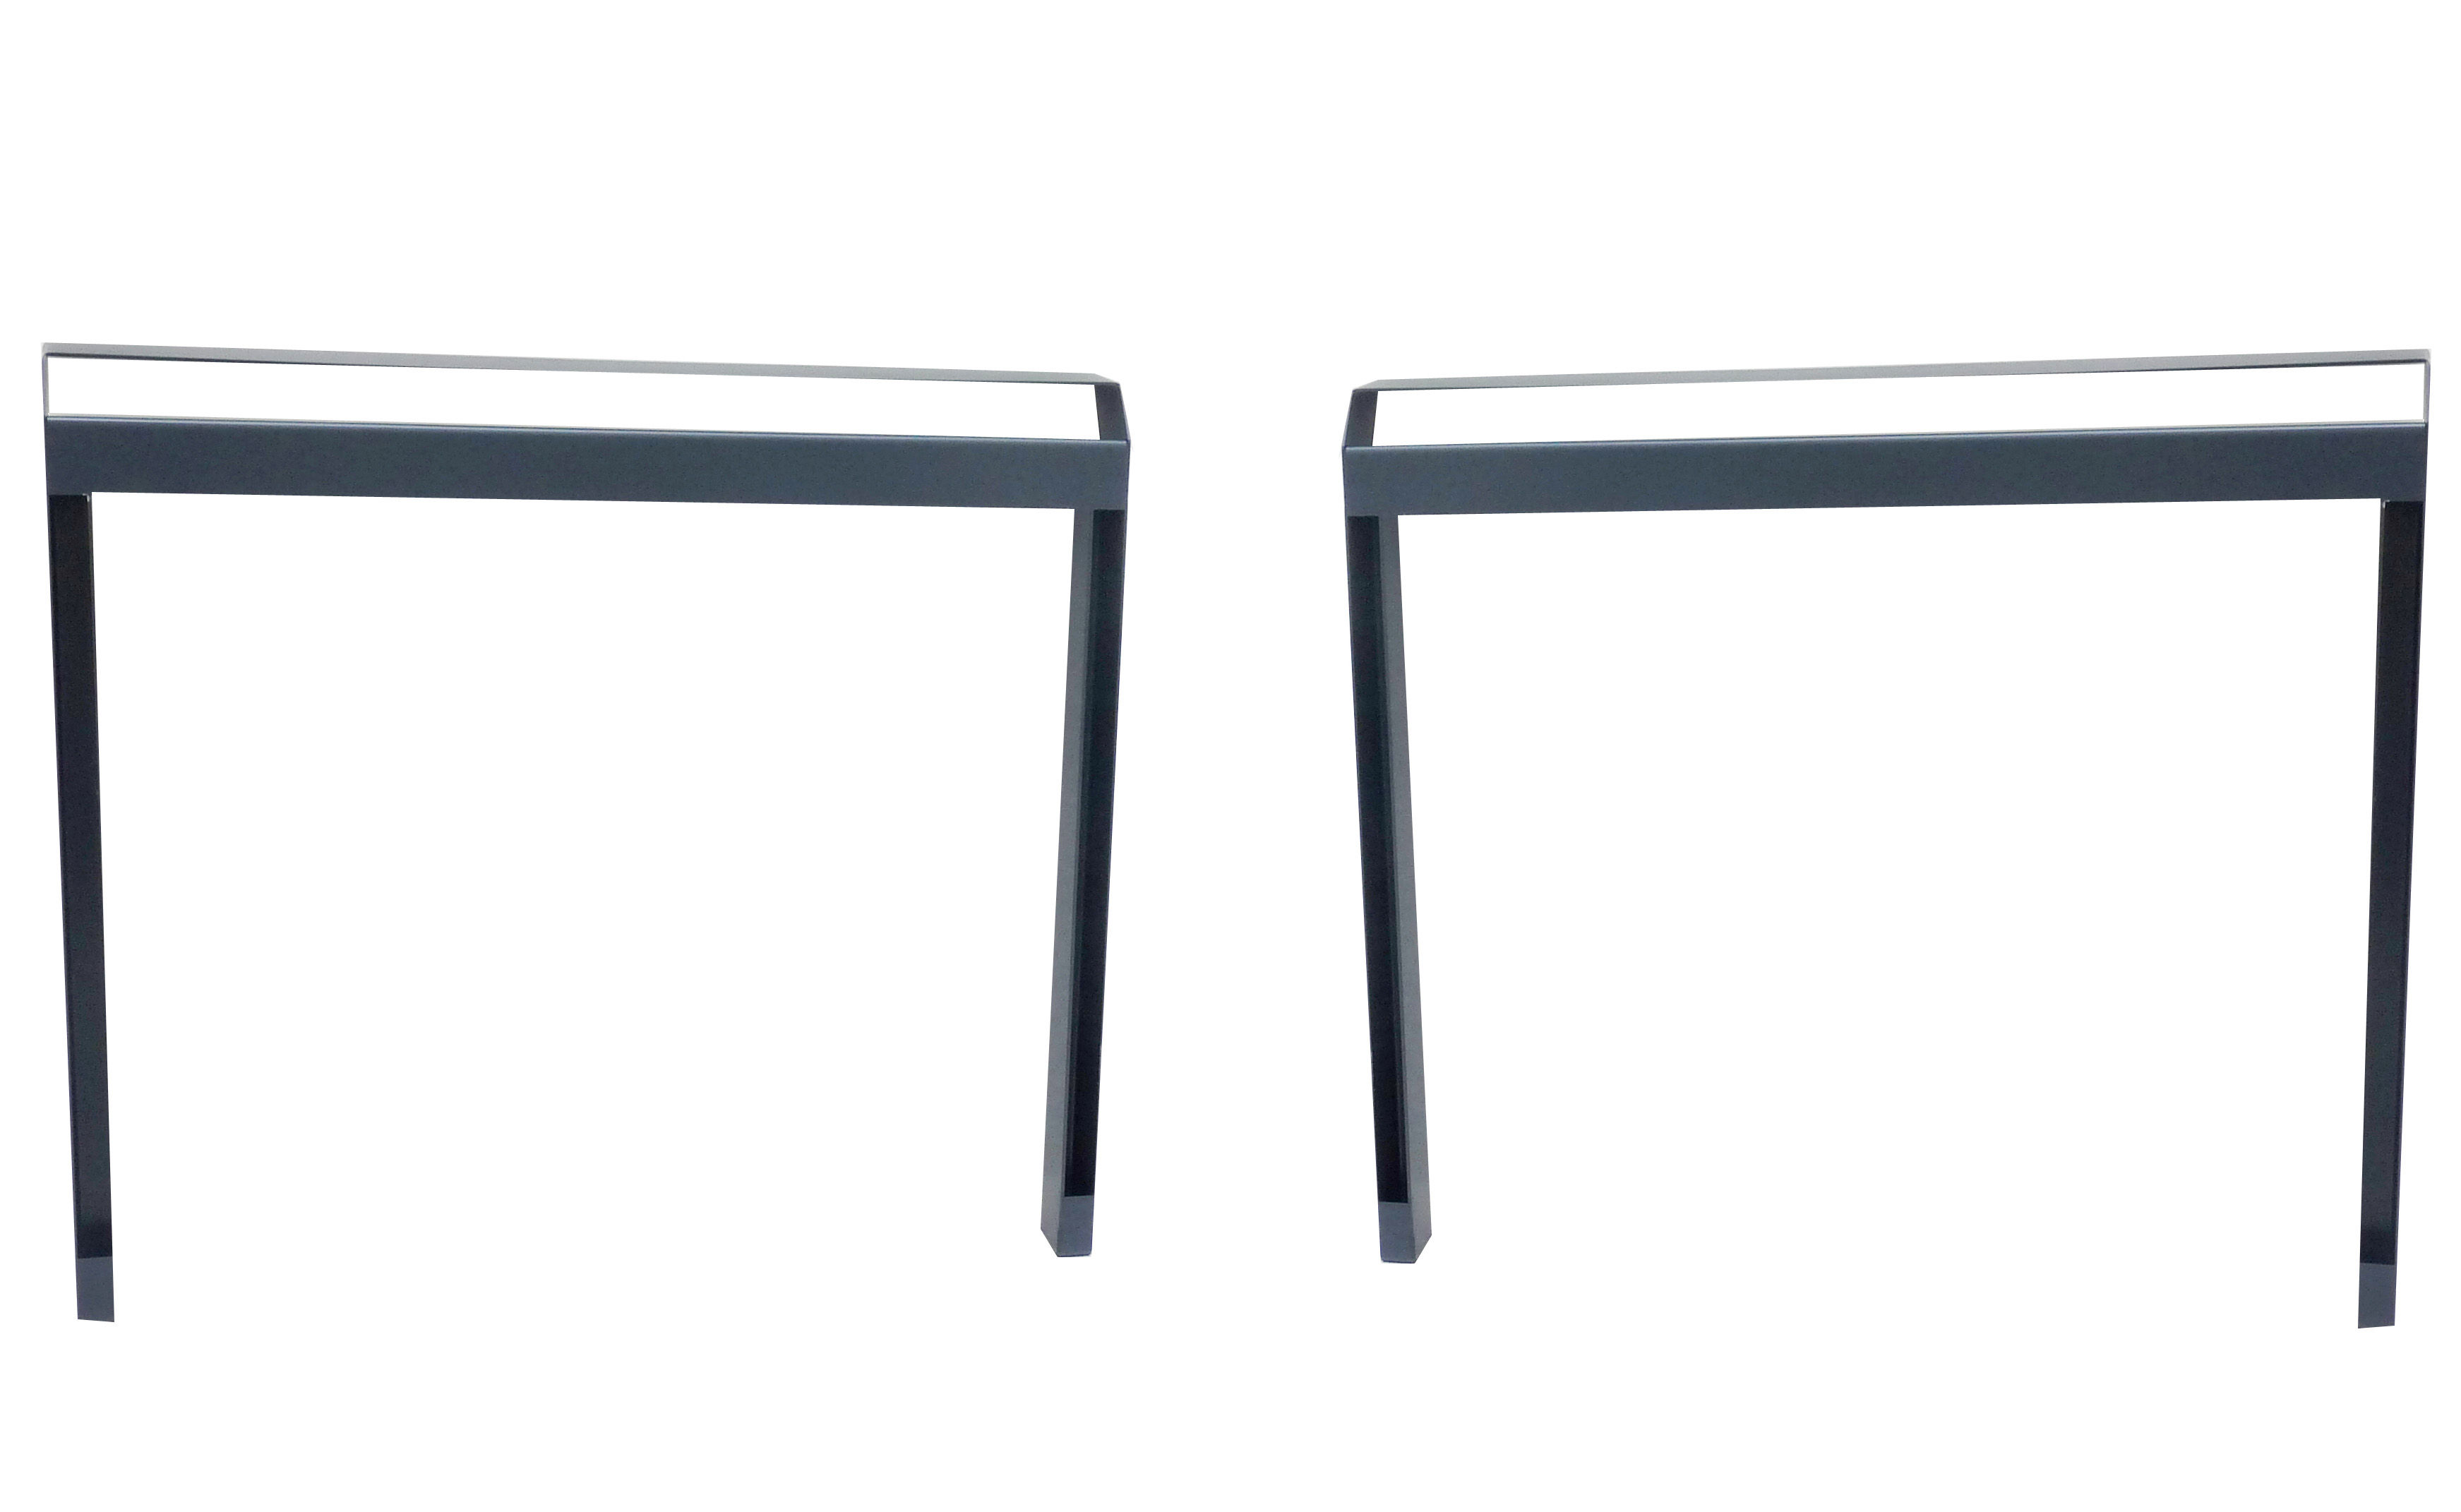 Furniture - Office Furniture - Pi Pair of trestles - Indoor use - Set of 2 by Moaroom - Indoor use / Gun - Lacquered steel